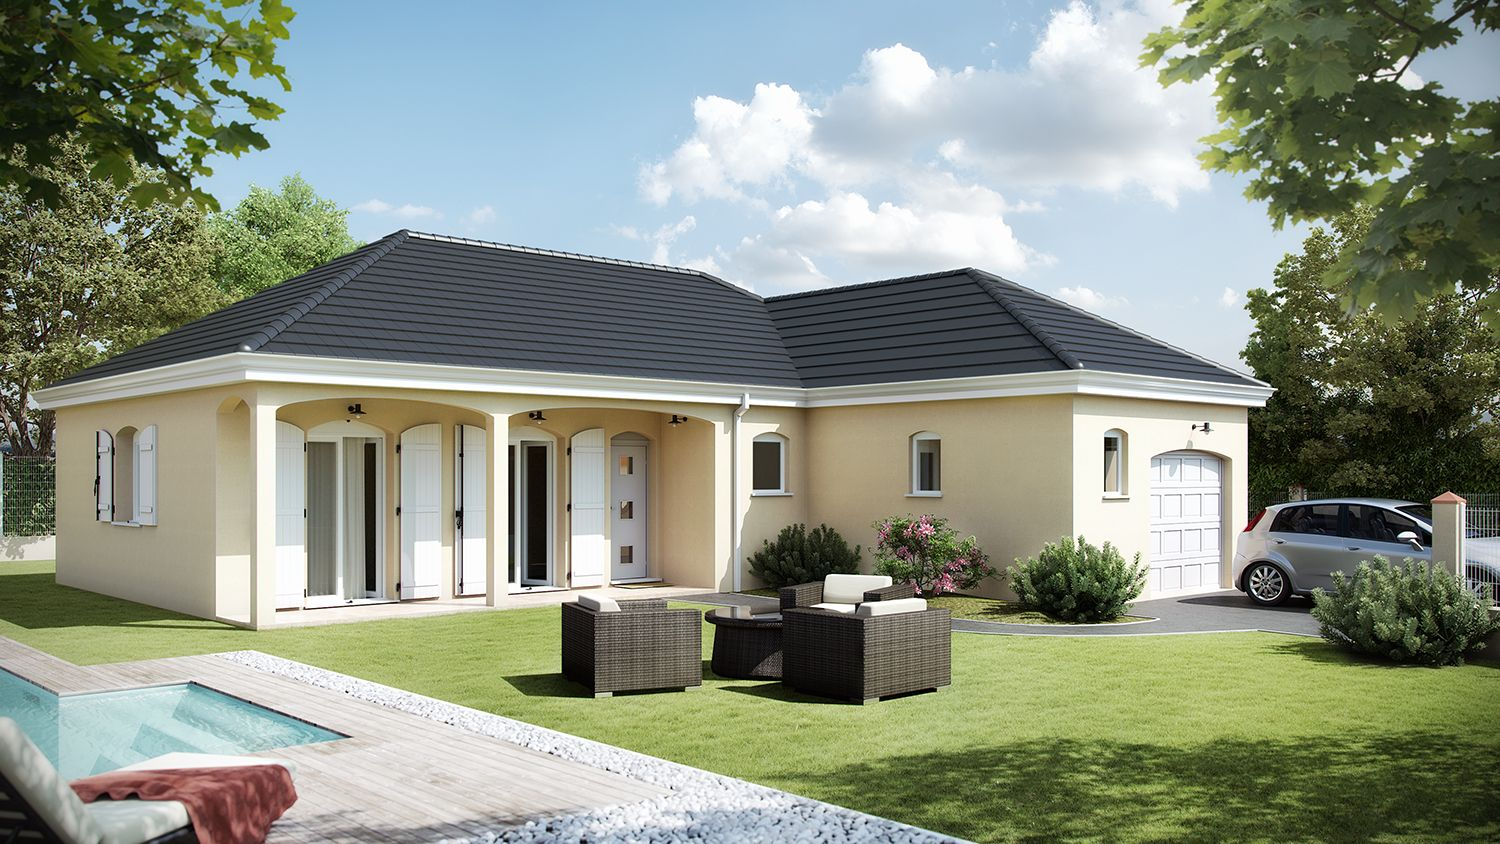 Modele de maison avec plan en l for Modele maison plain pied contemporaine